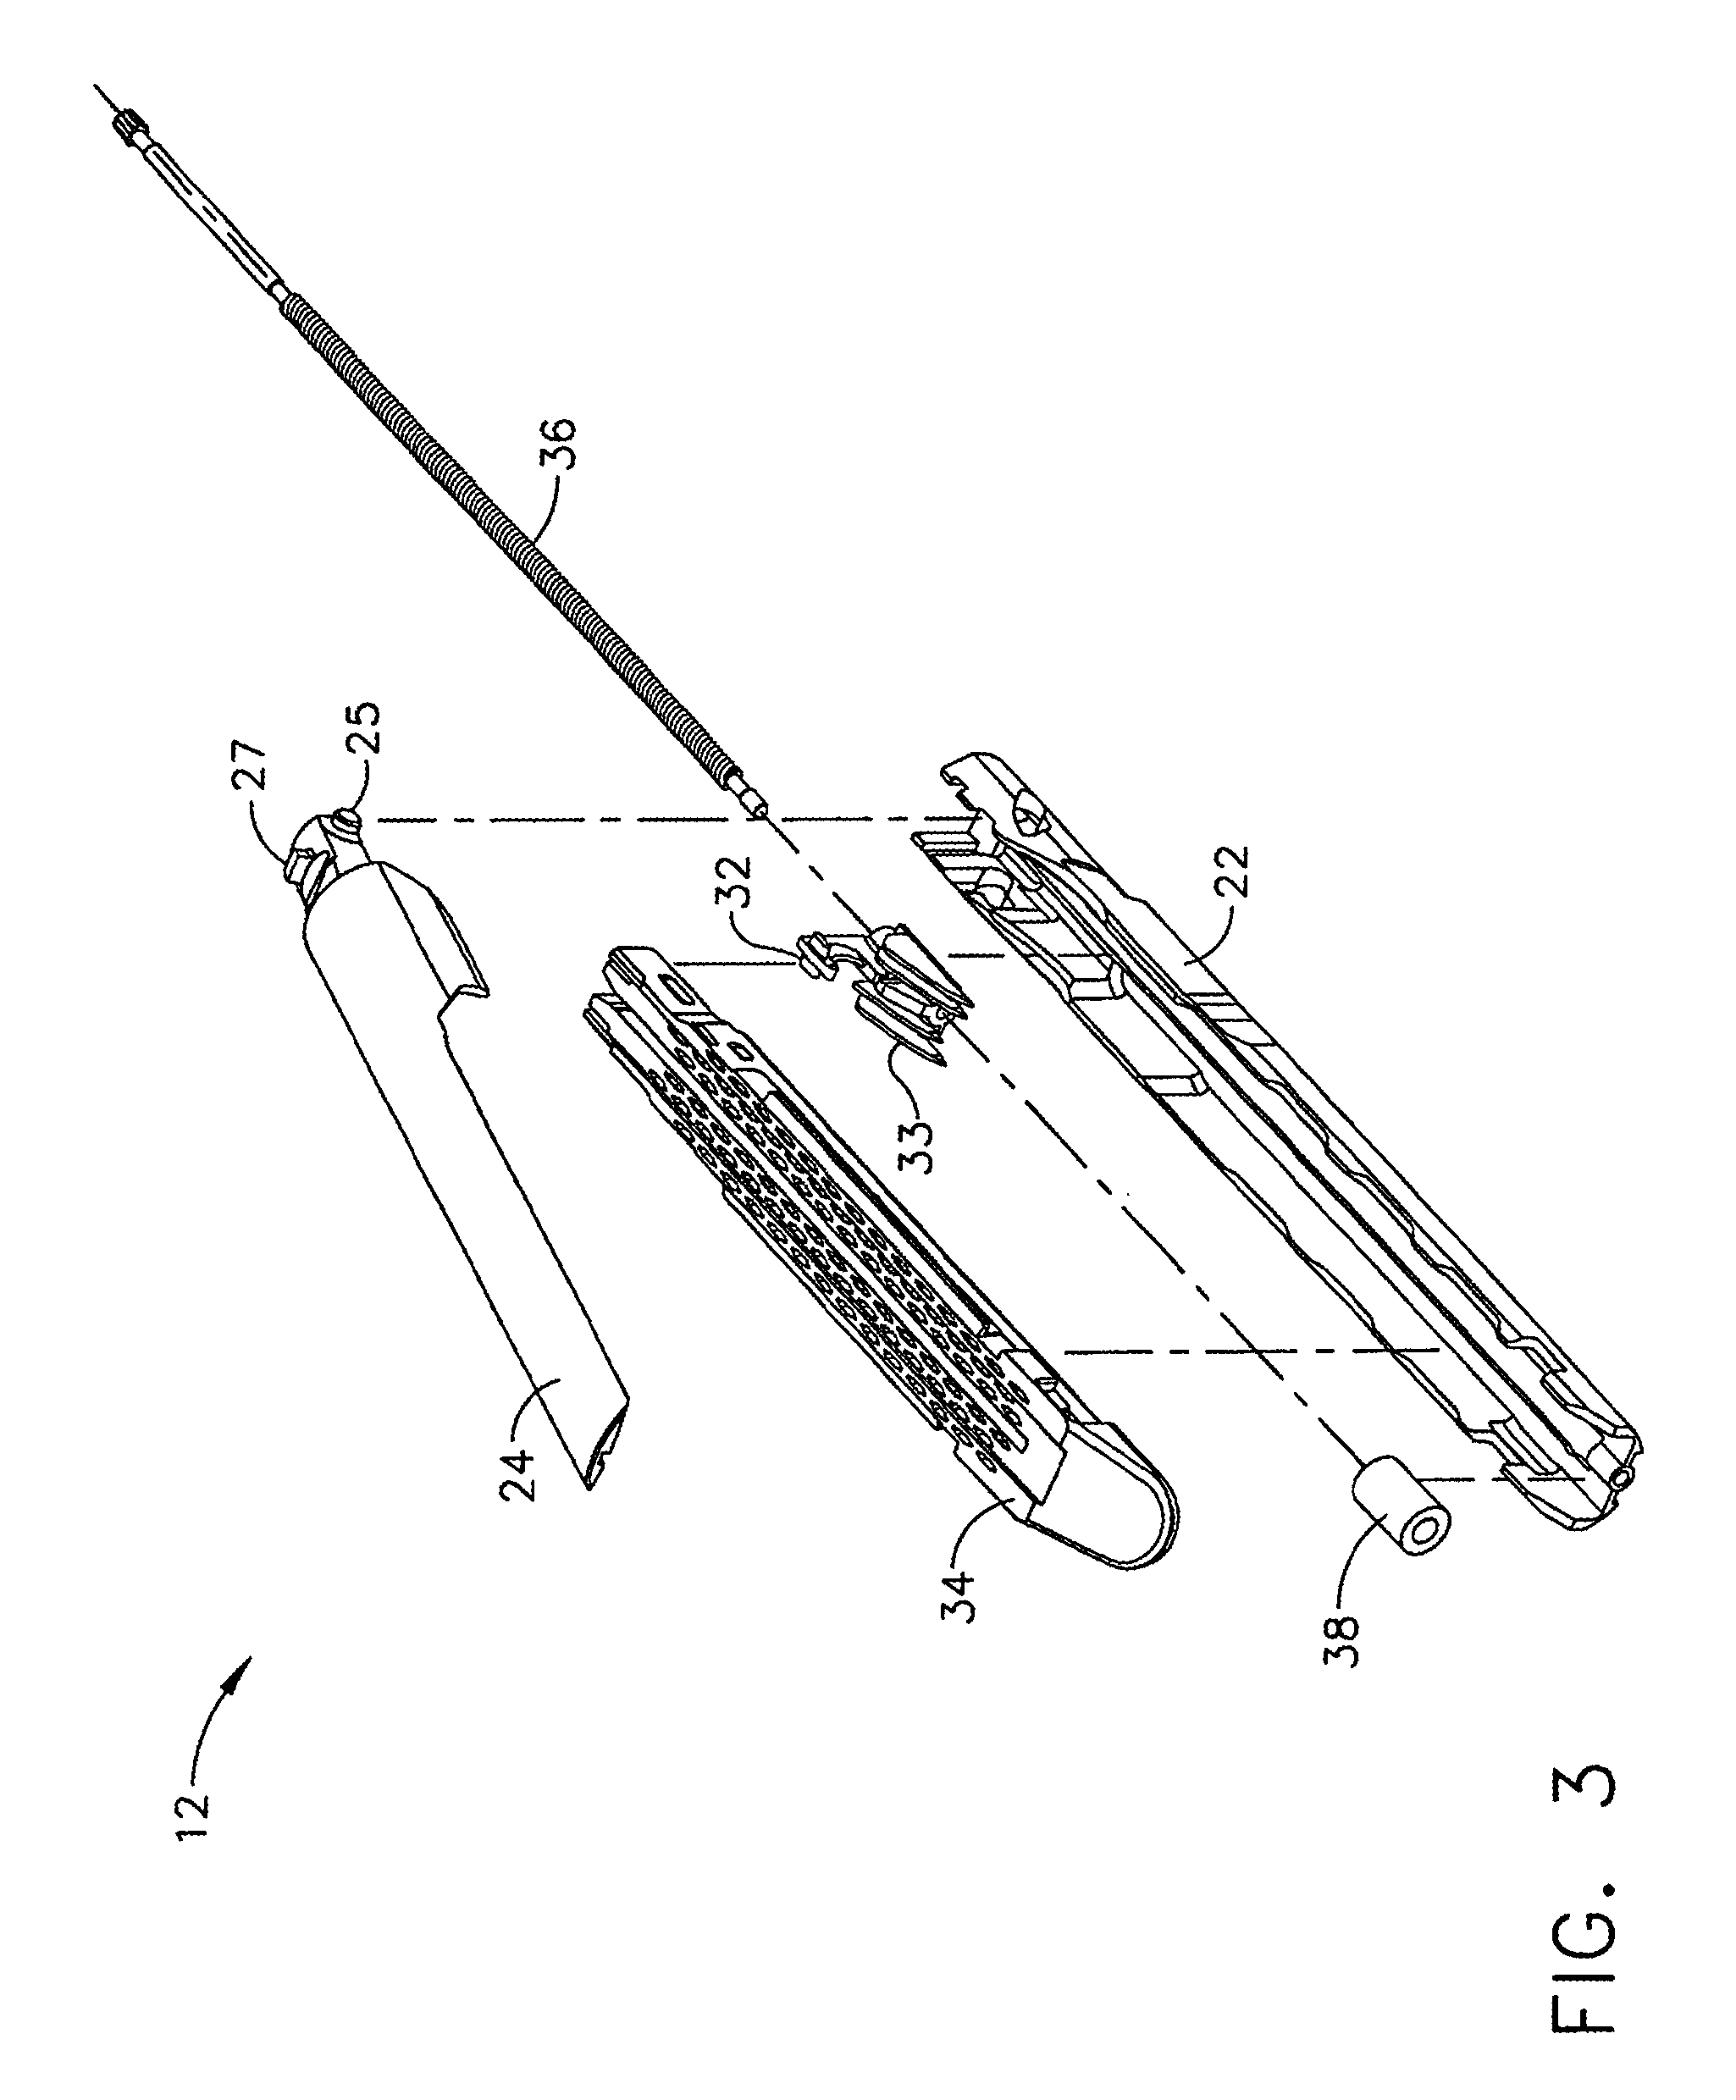 US9451958B2 - Surgical instrument with firing actuator